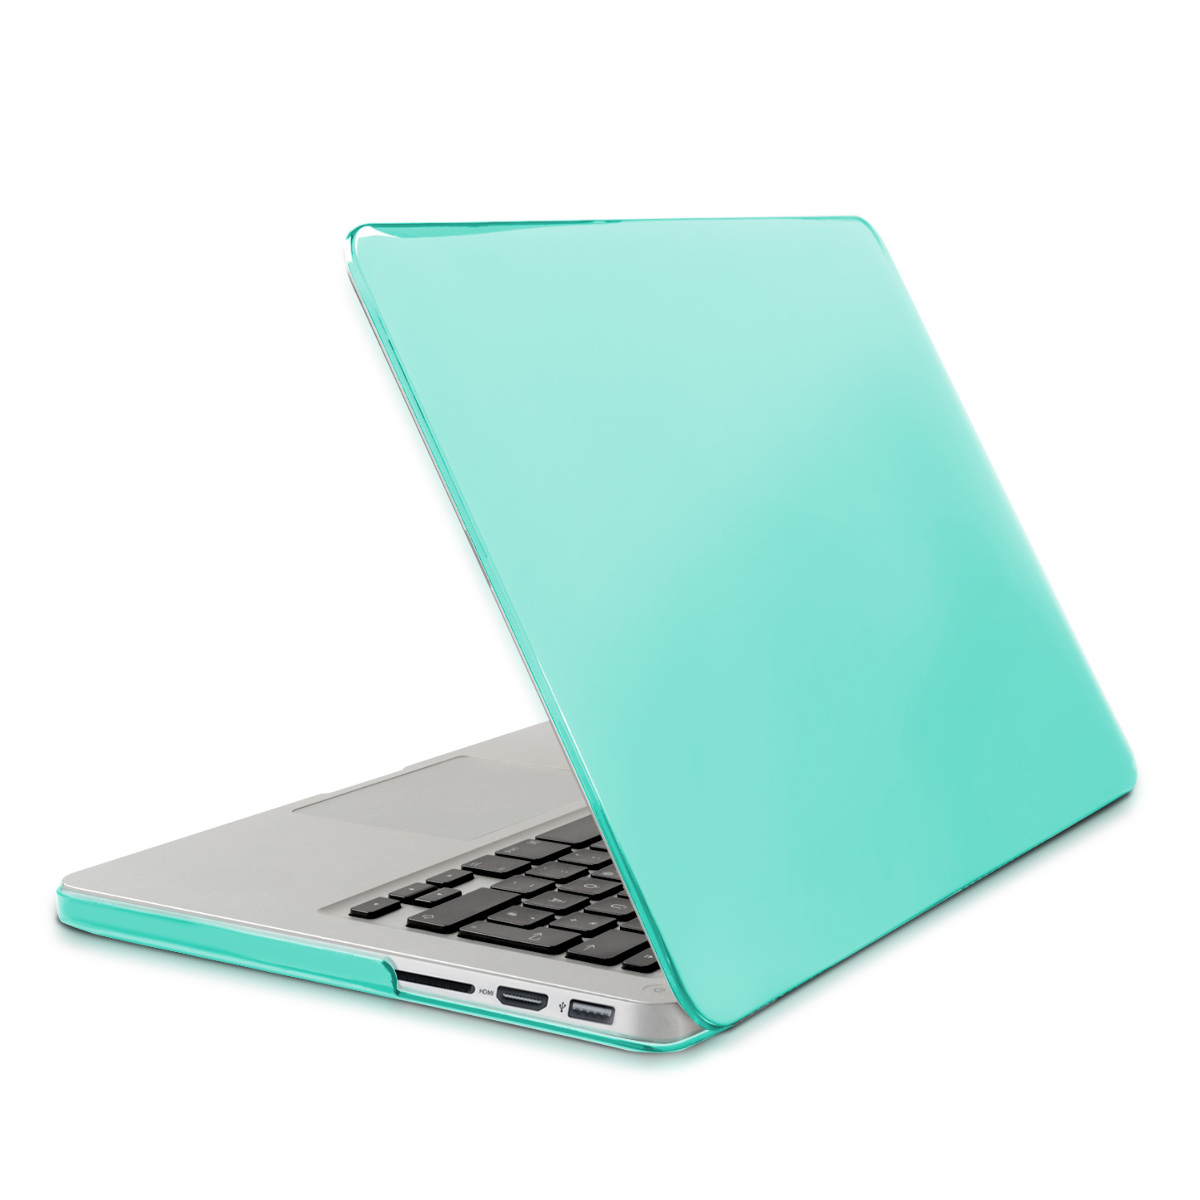 FUNDA-TRANSPARENTE-PARA-APPLE-MACBOOK-PRO-RETINA-13-034-FINALES-DE-2012